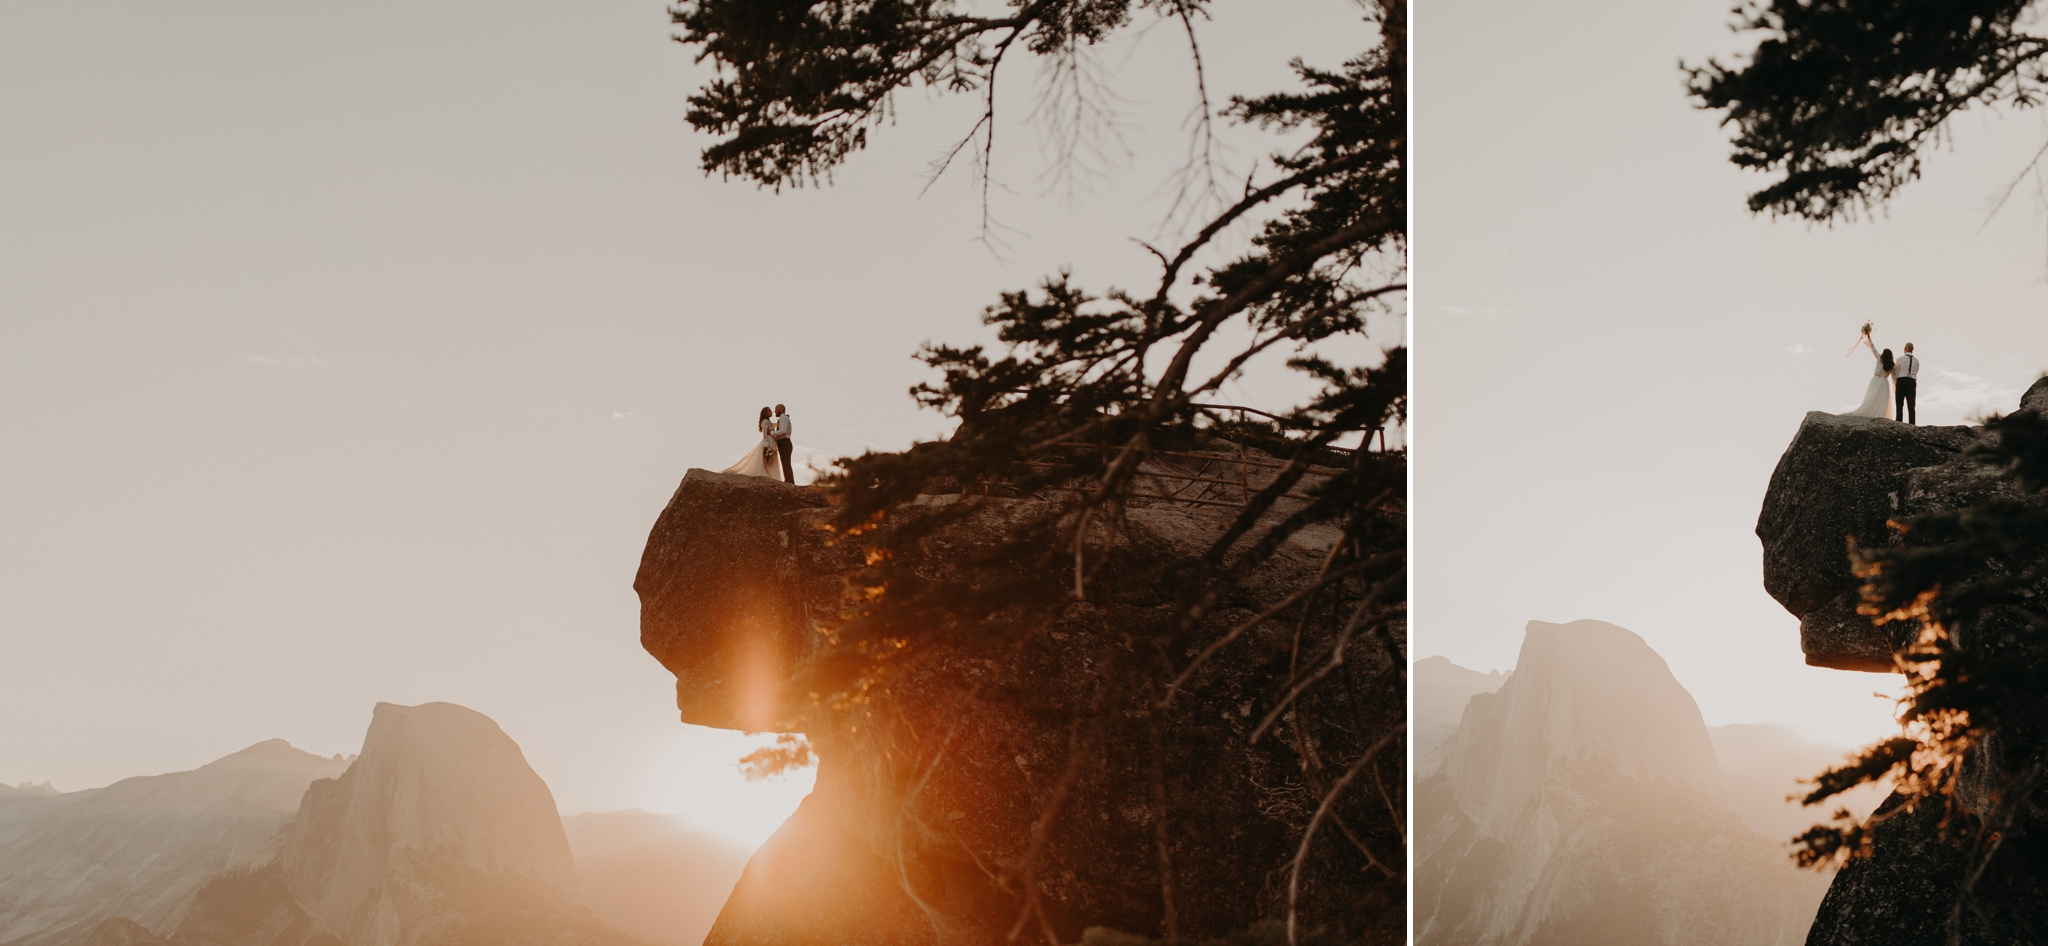 yosemite-elopement-photographer7.jpg